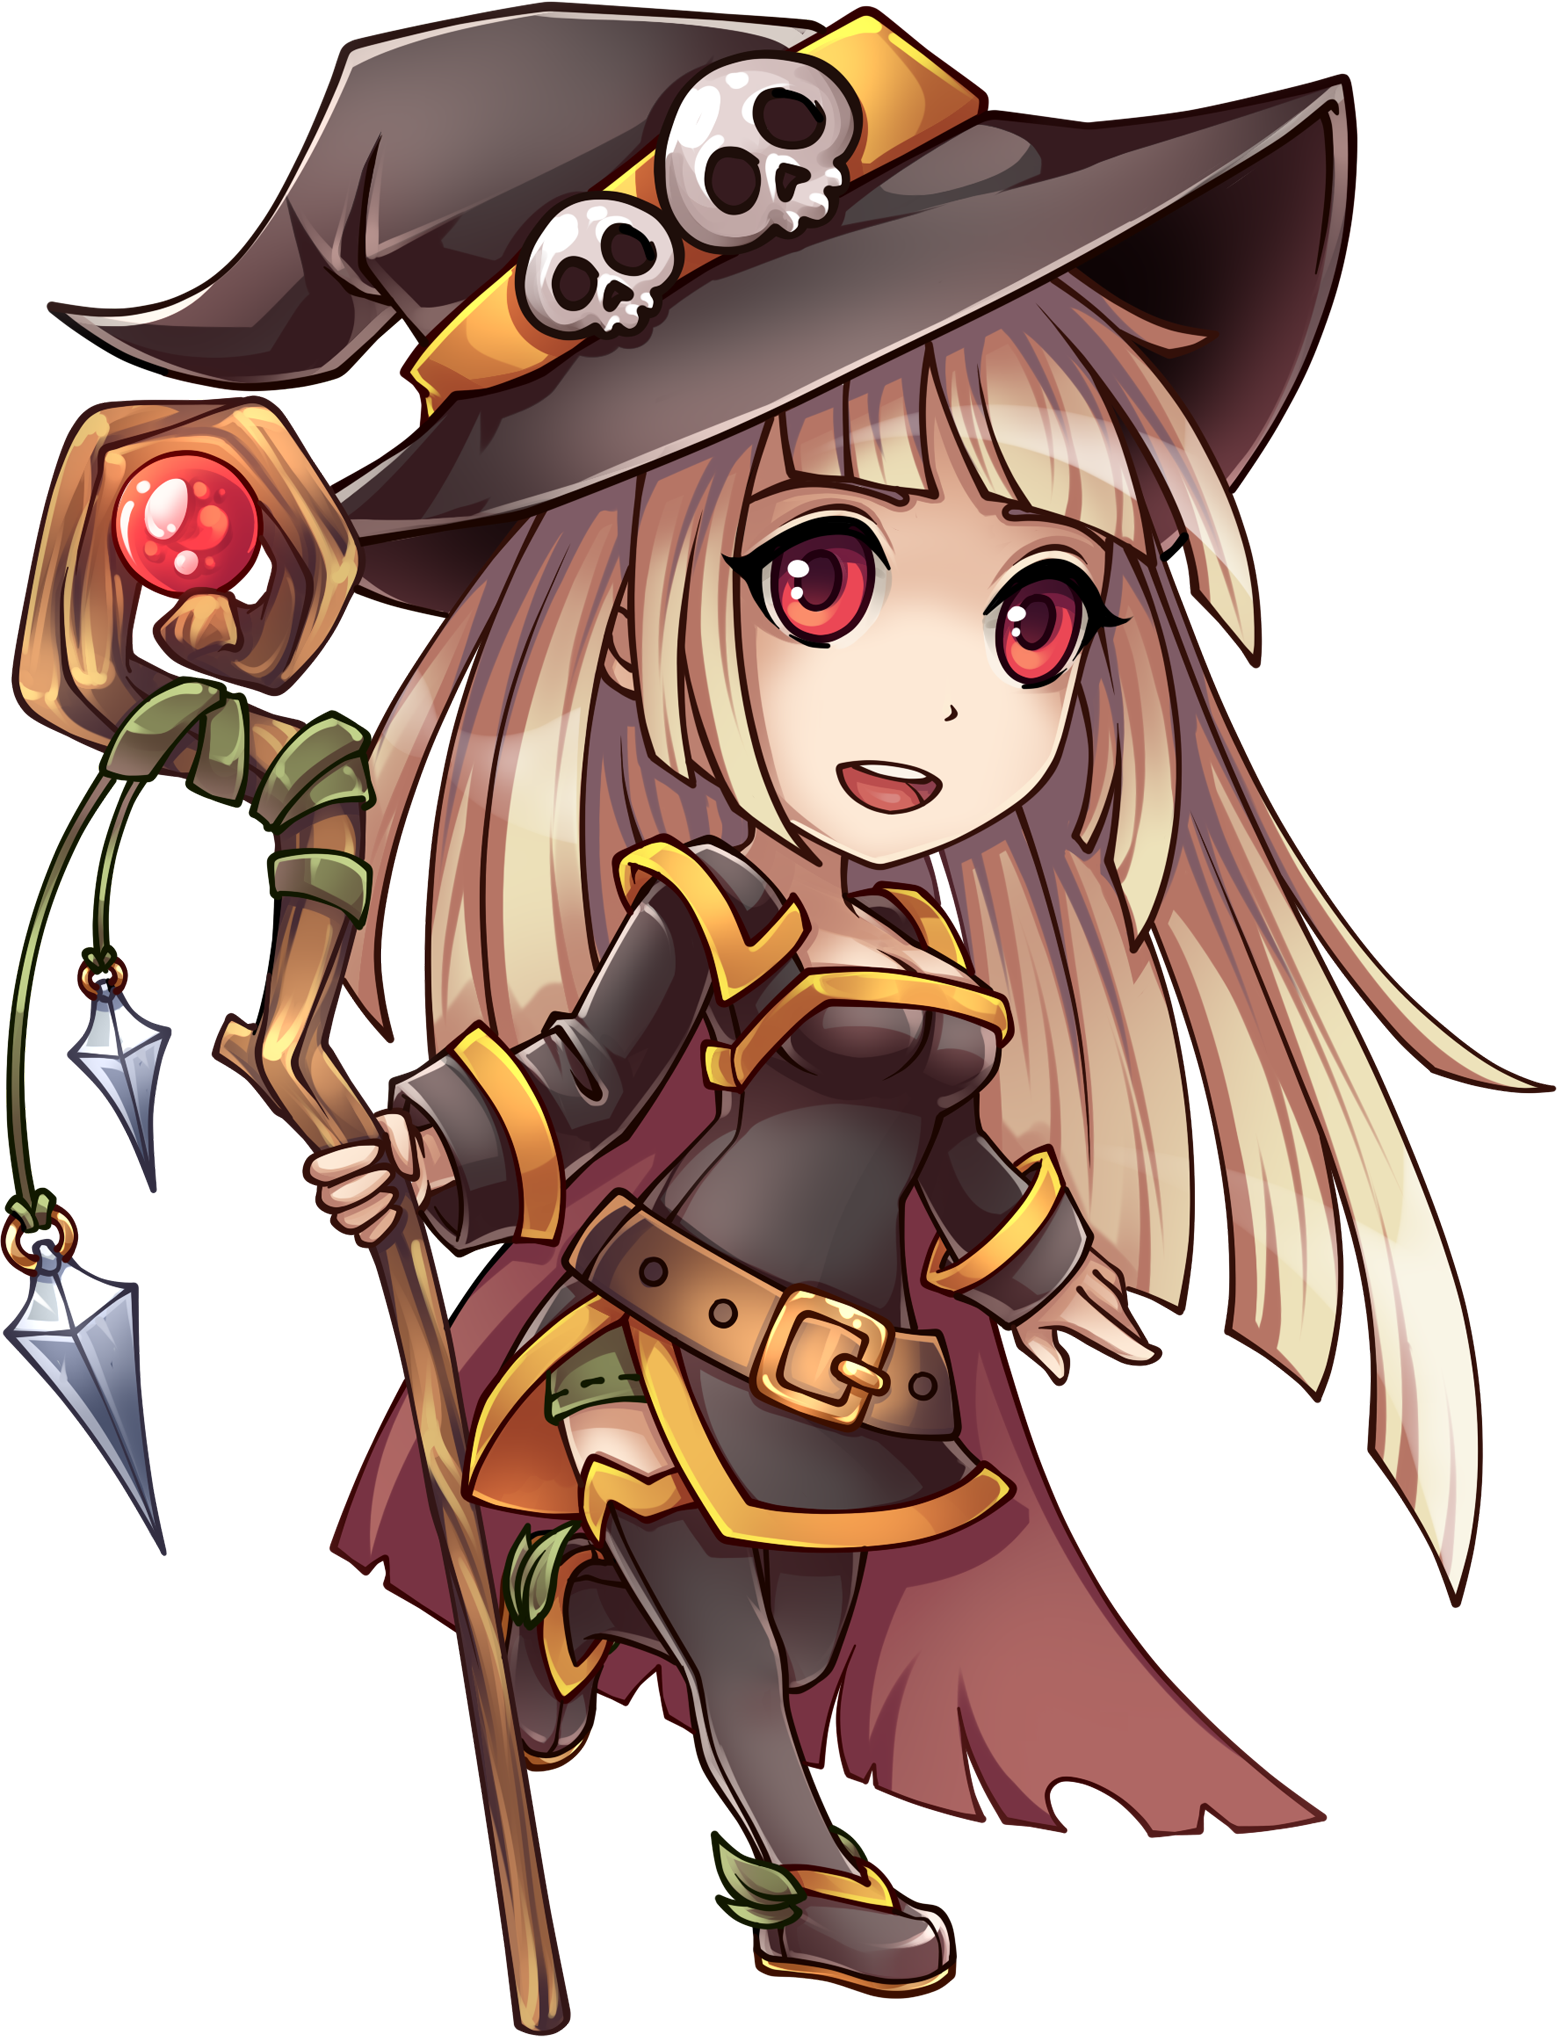 Anime witch png. Image girl pirates of